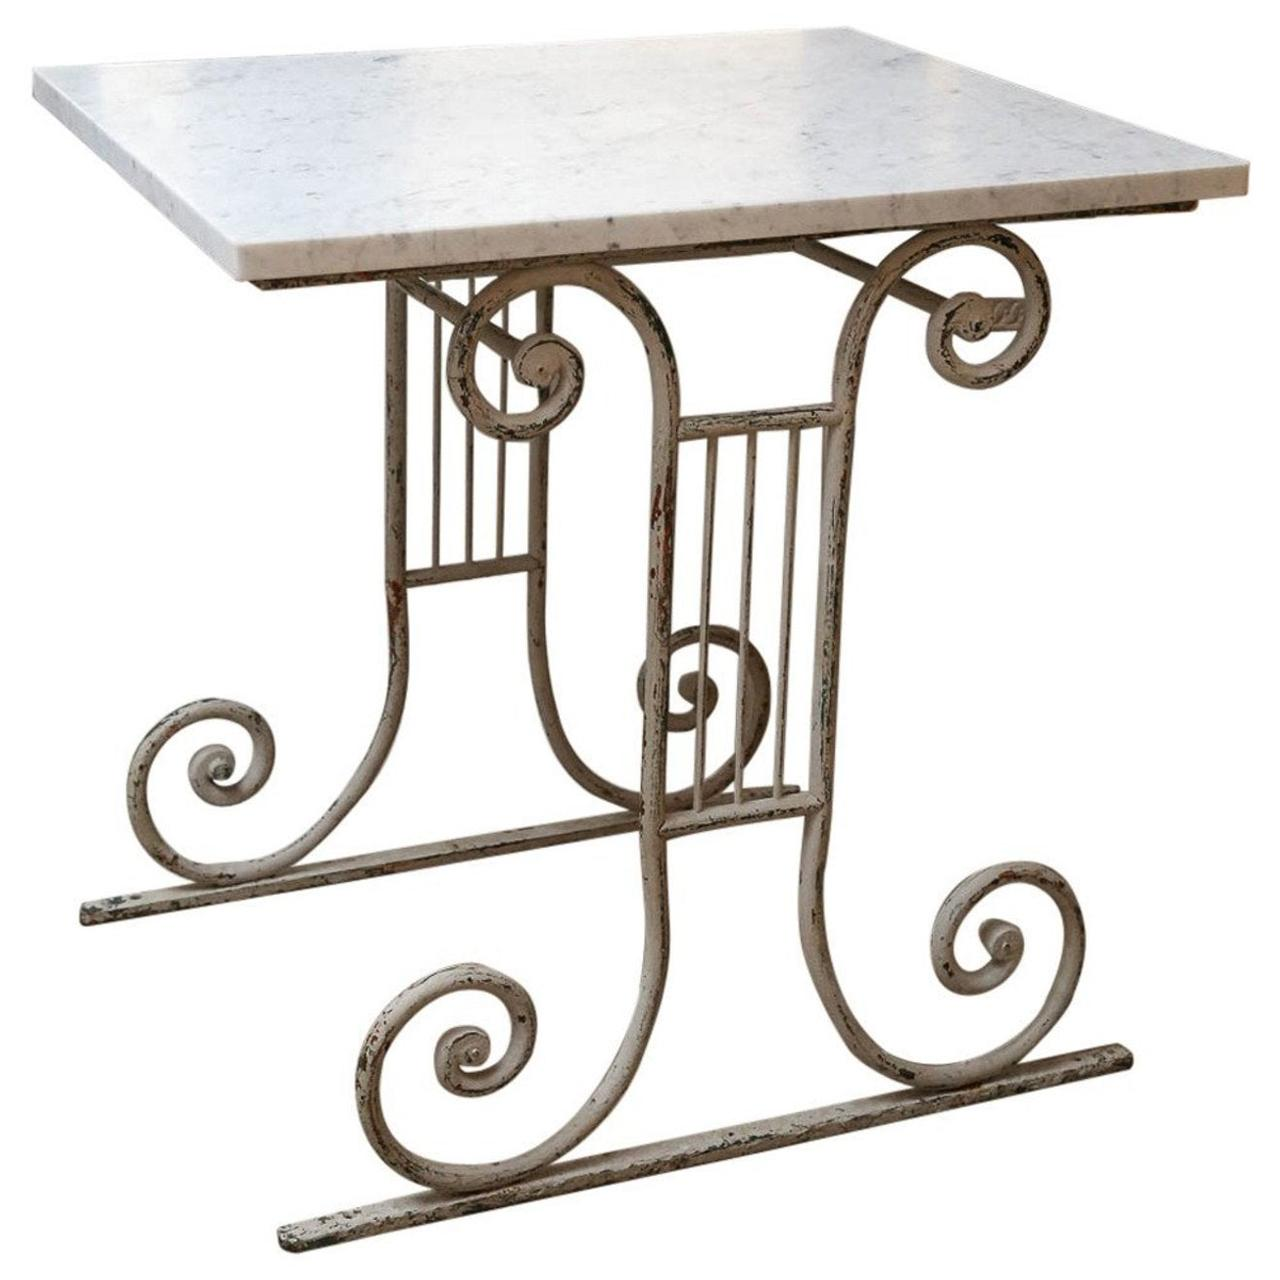 Marble-Top White-Painted Iron Base Table